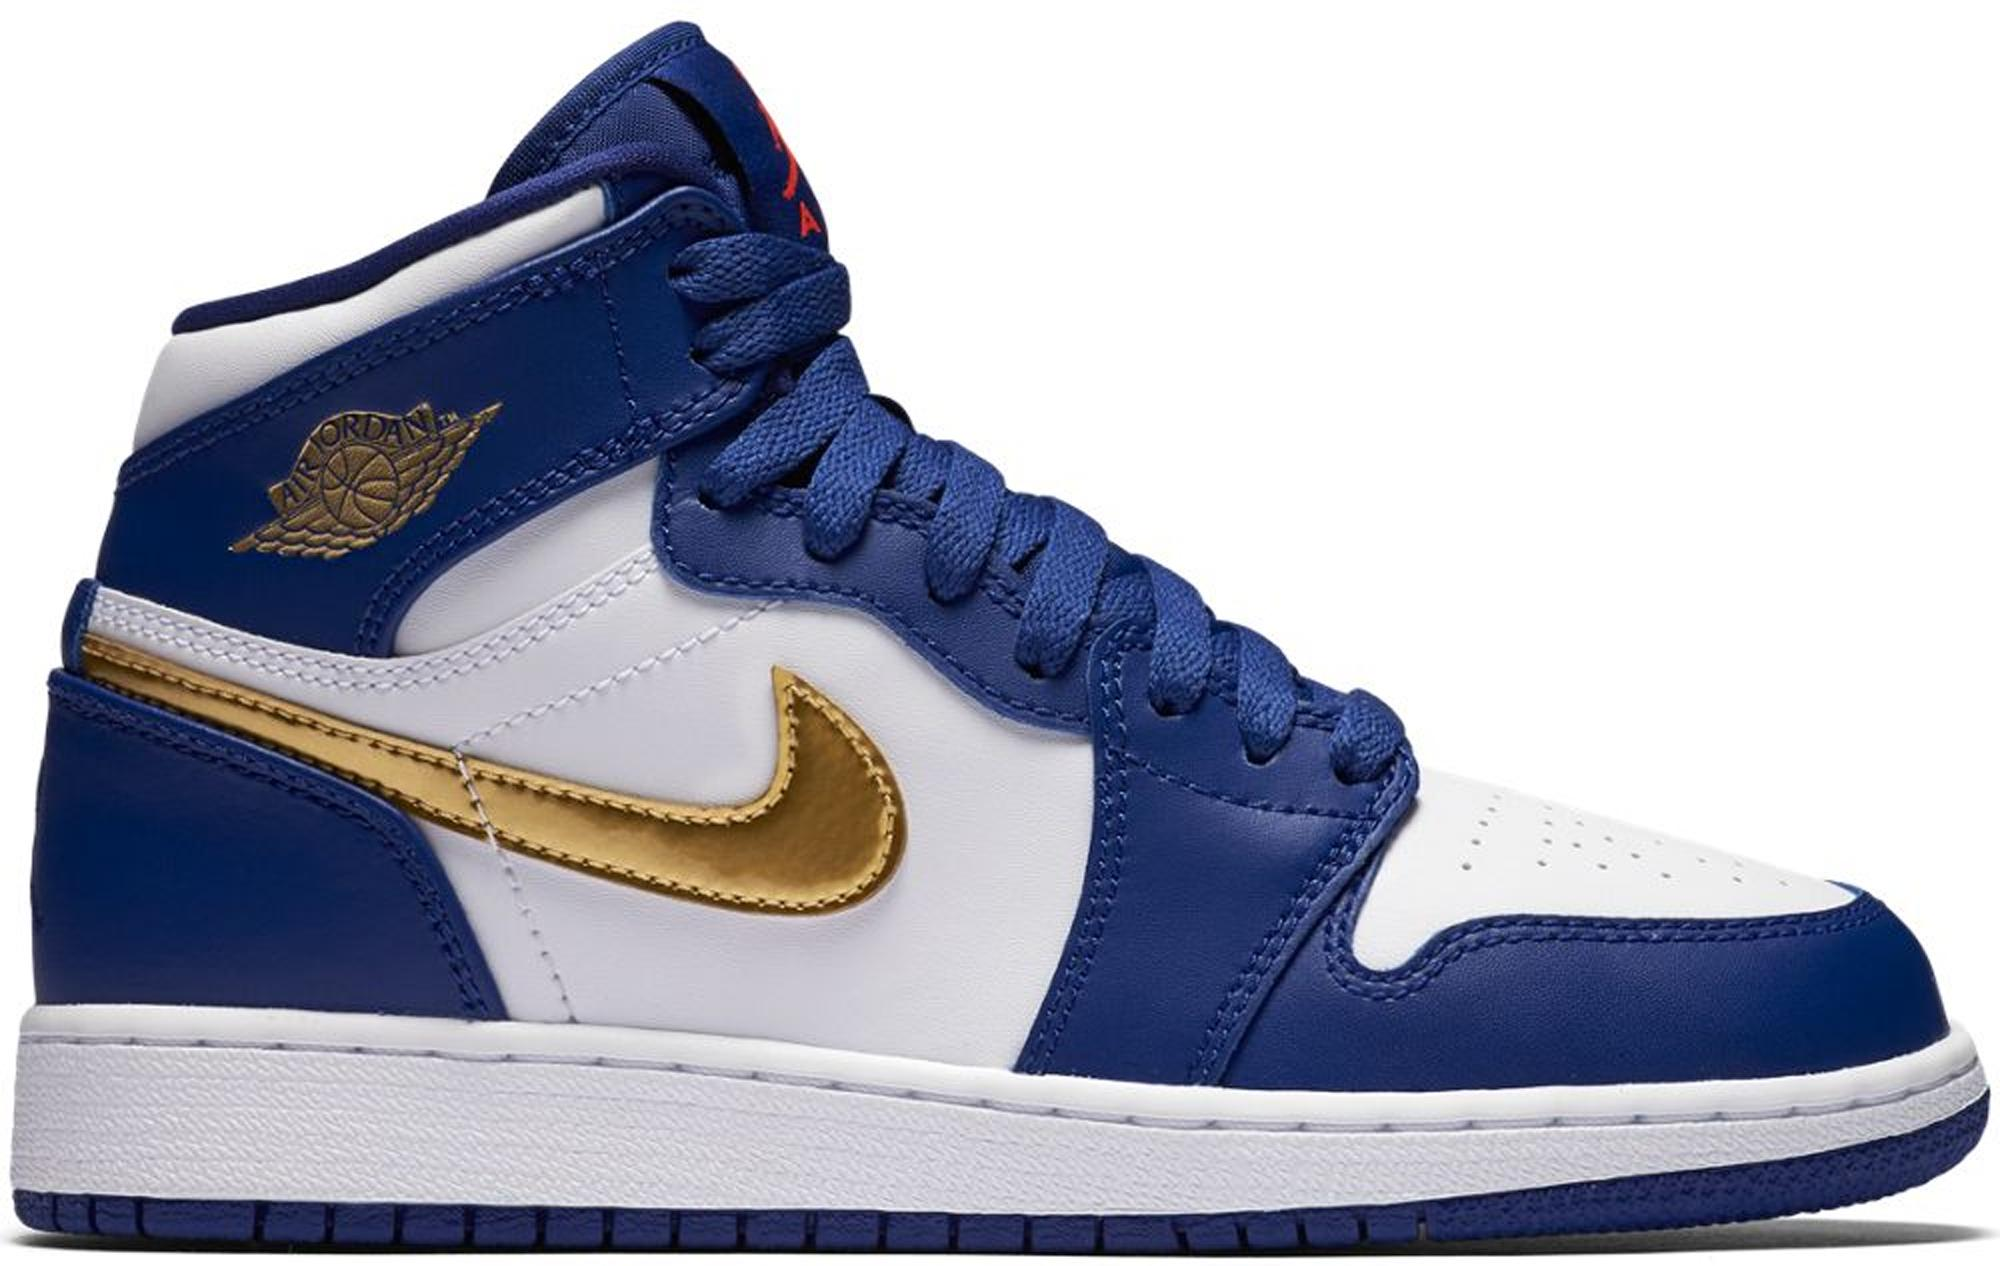 Lyst - Nike 1 Retro High Gold Medal (gs) in Blue for Men 655695c39be1